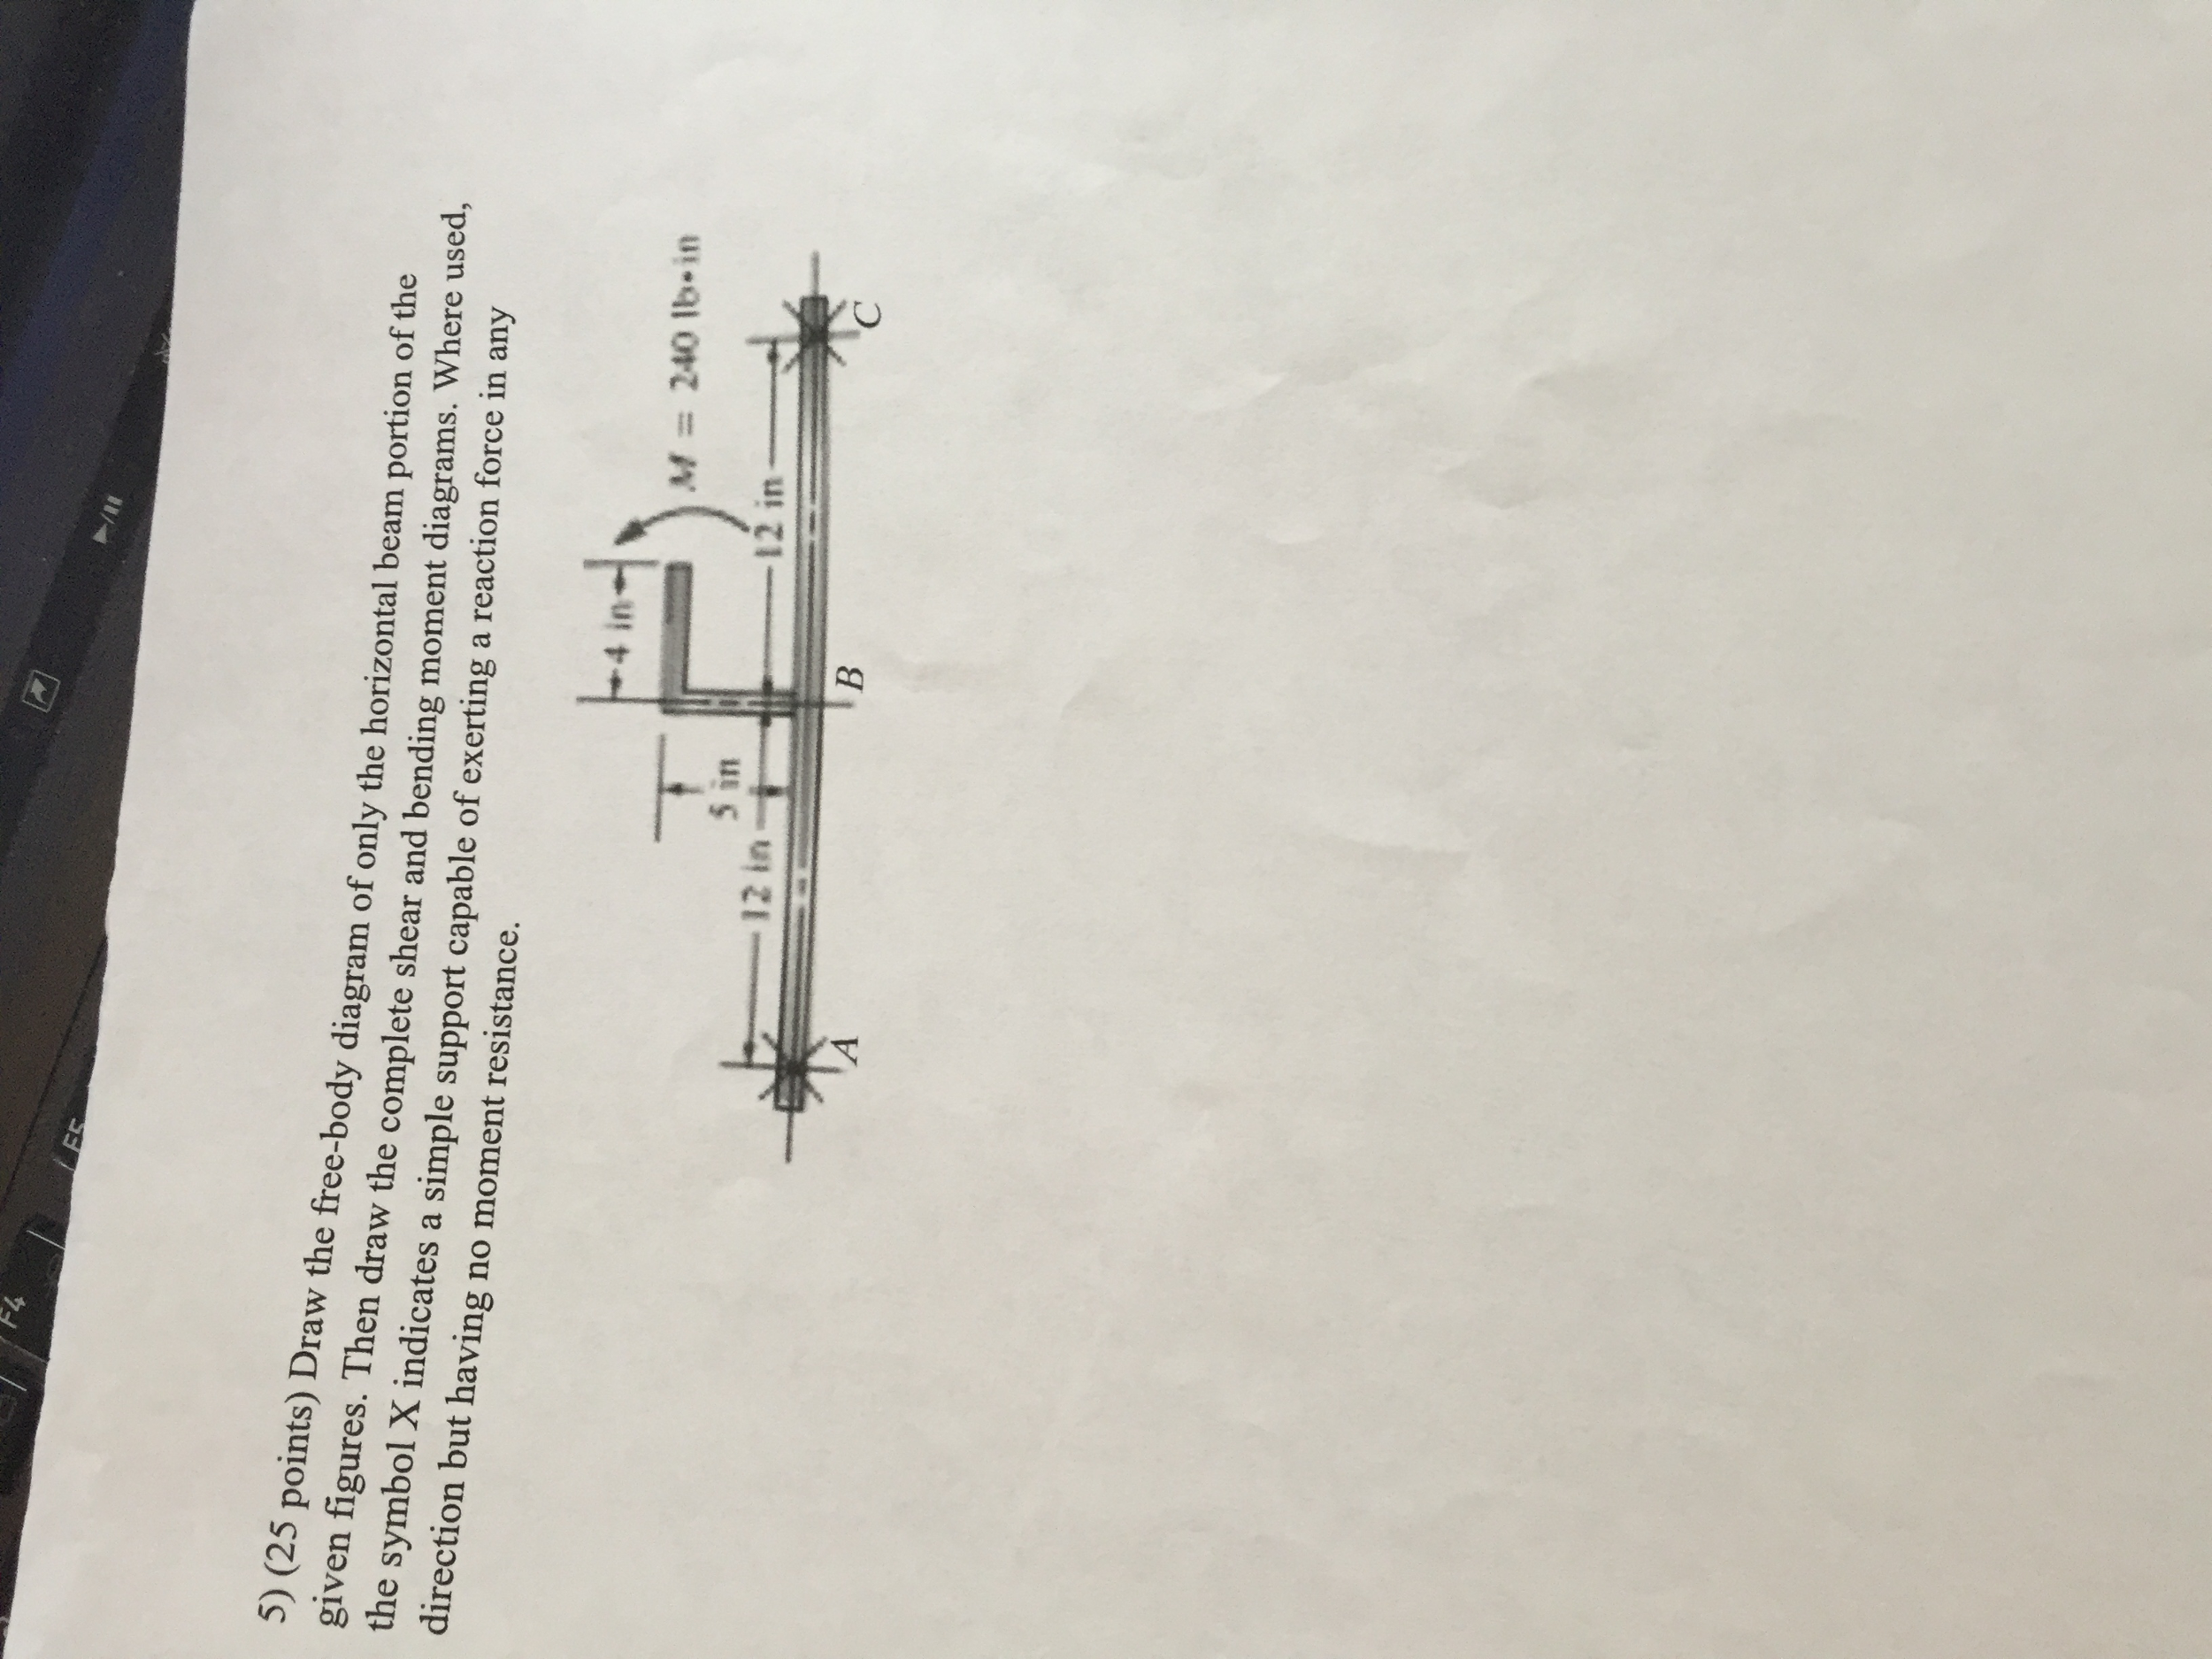 Pin Connected Beam Shear Diagram Electrical Wiring Moment Cantilever Mechanical Engineering Archive October 10 2015 Chegg Com Draw The